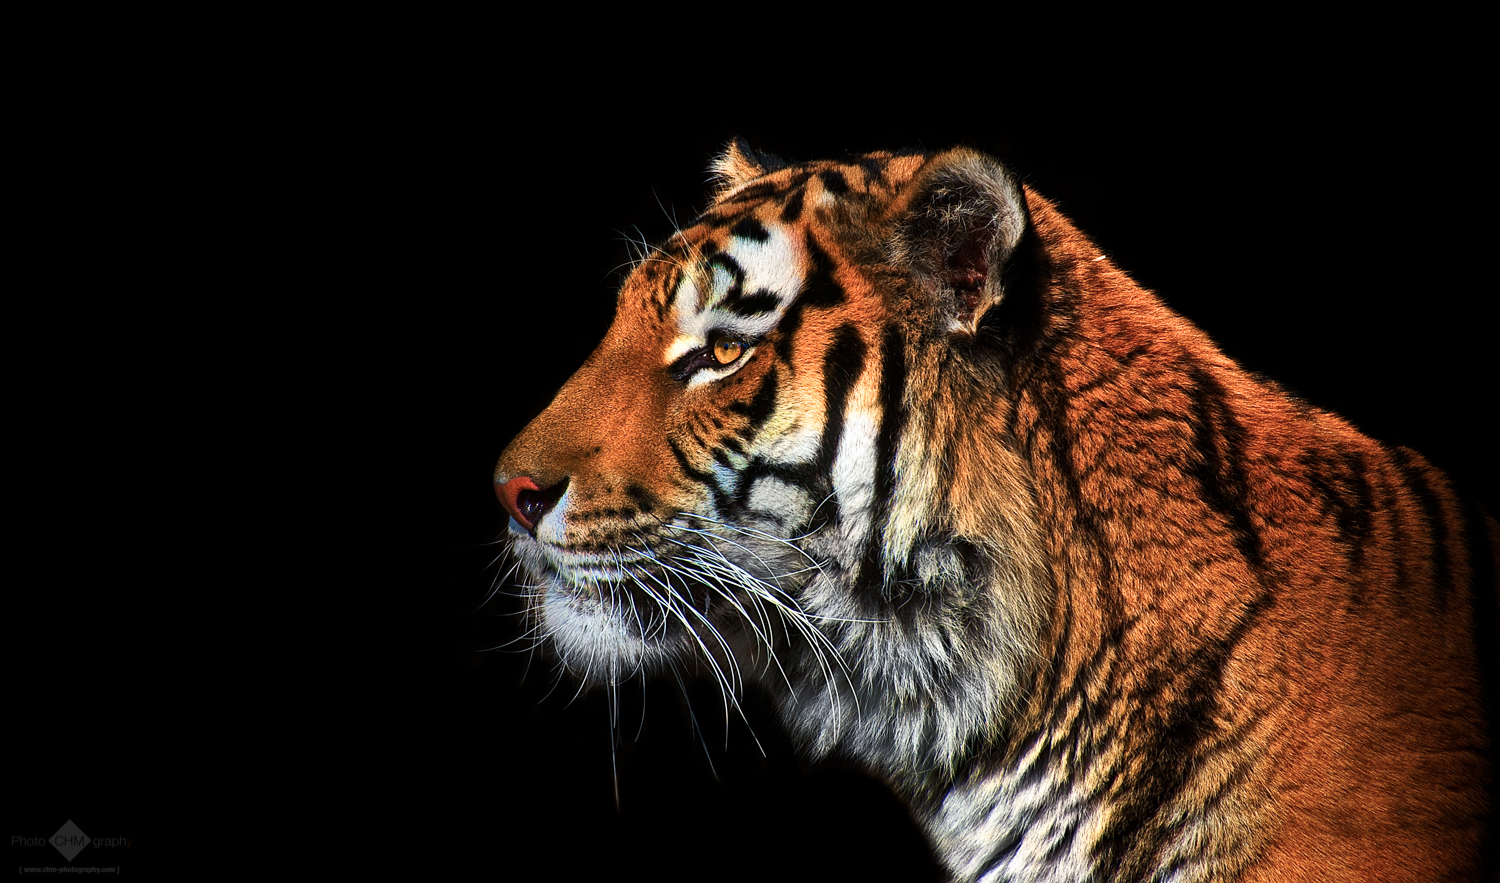 tiger portrait on black background - chm-photography